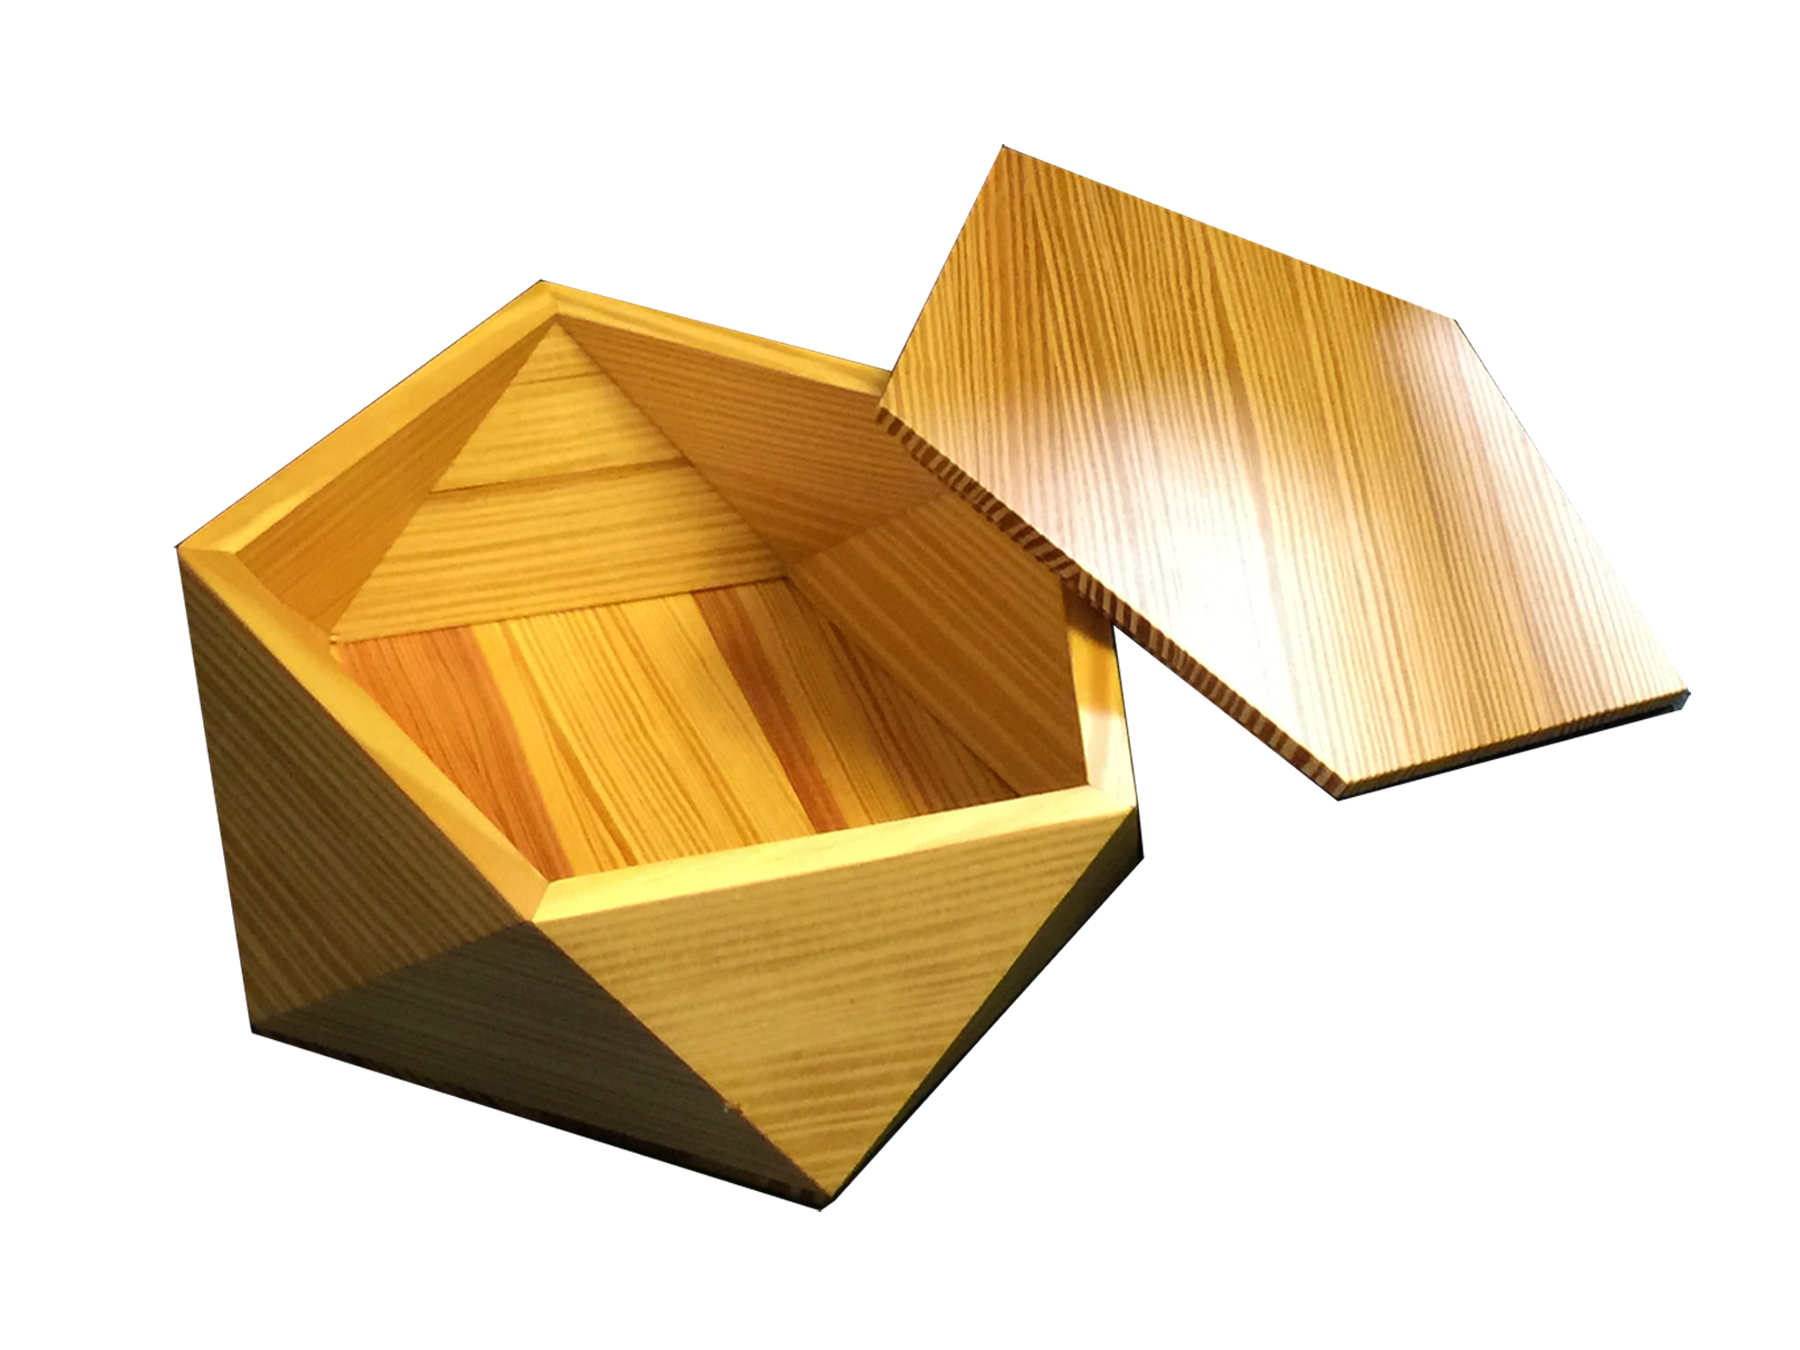 Pentagonal Box - Reclaimed Fir